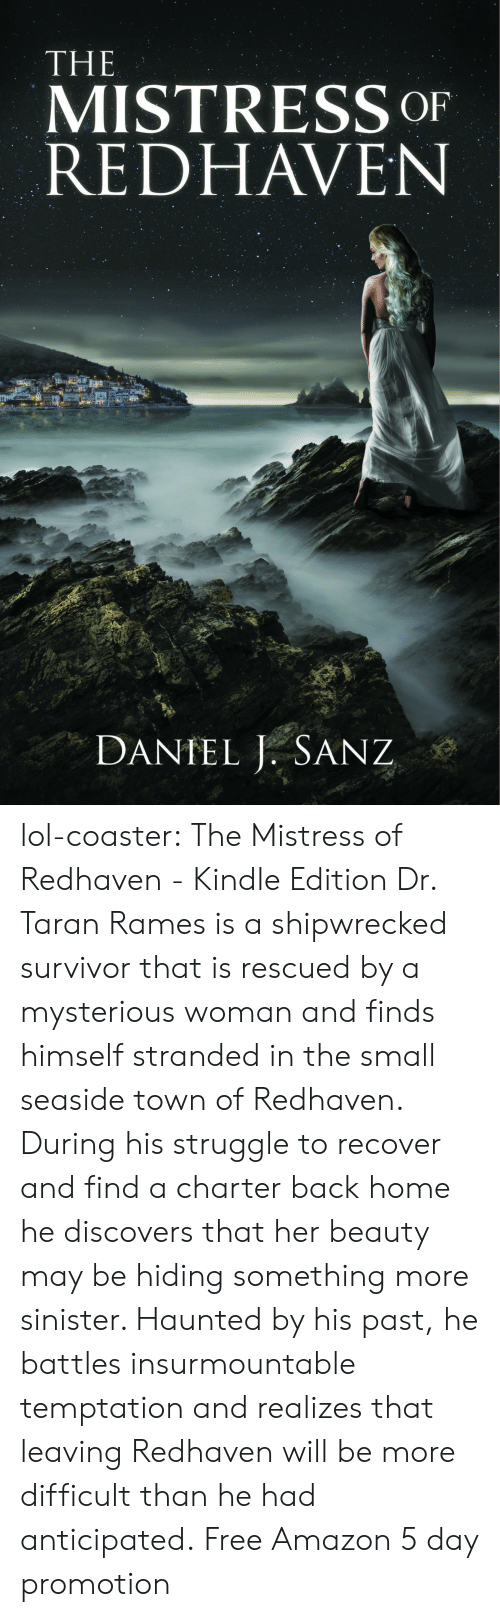 Amazon, Lol, and Struggle: THE  MISTRESS OF  REDHAVEN  DANTEL J. SANZ lol-coaster:    The Mistress of Redhaven - Kindle Edition     Dr. Taran Rames is a shipwrecked survivor that is rescued by a mysterious woman and finds himself stranded in the small seaside town of Redhaven. During his struggle to recover and find a charter back home he discovers that her beauty may be hiding something more sinister. Haunted by his past, he battles insurmountable temptation and realizes that leaving Redhaven will be more difficult than he had anticipated. Free Amazon 5 day promotion